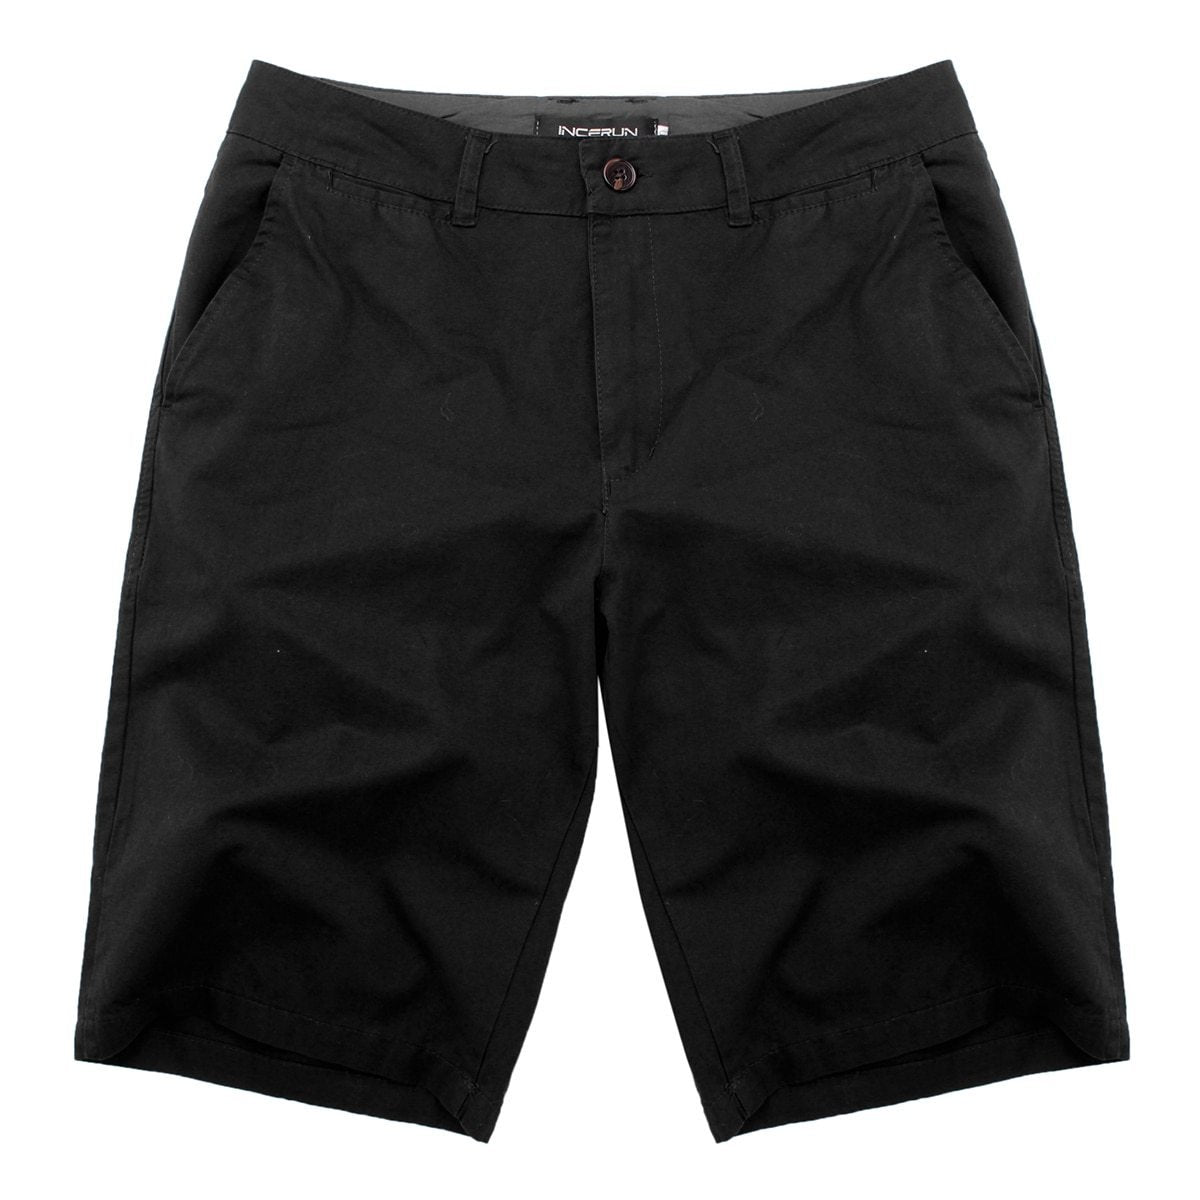 Linen Shorts chrynne.com Men's Shorts 21.99